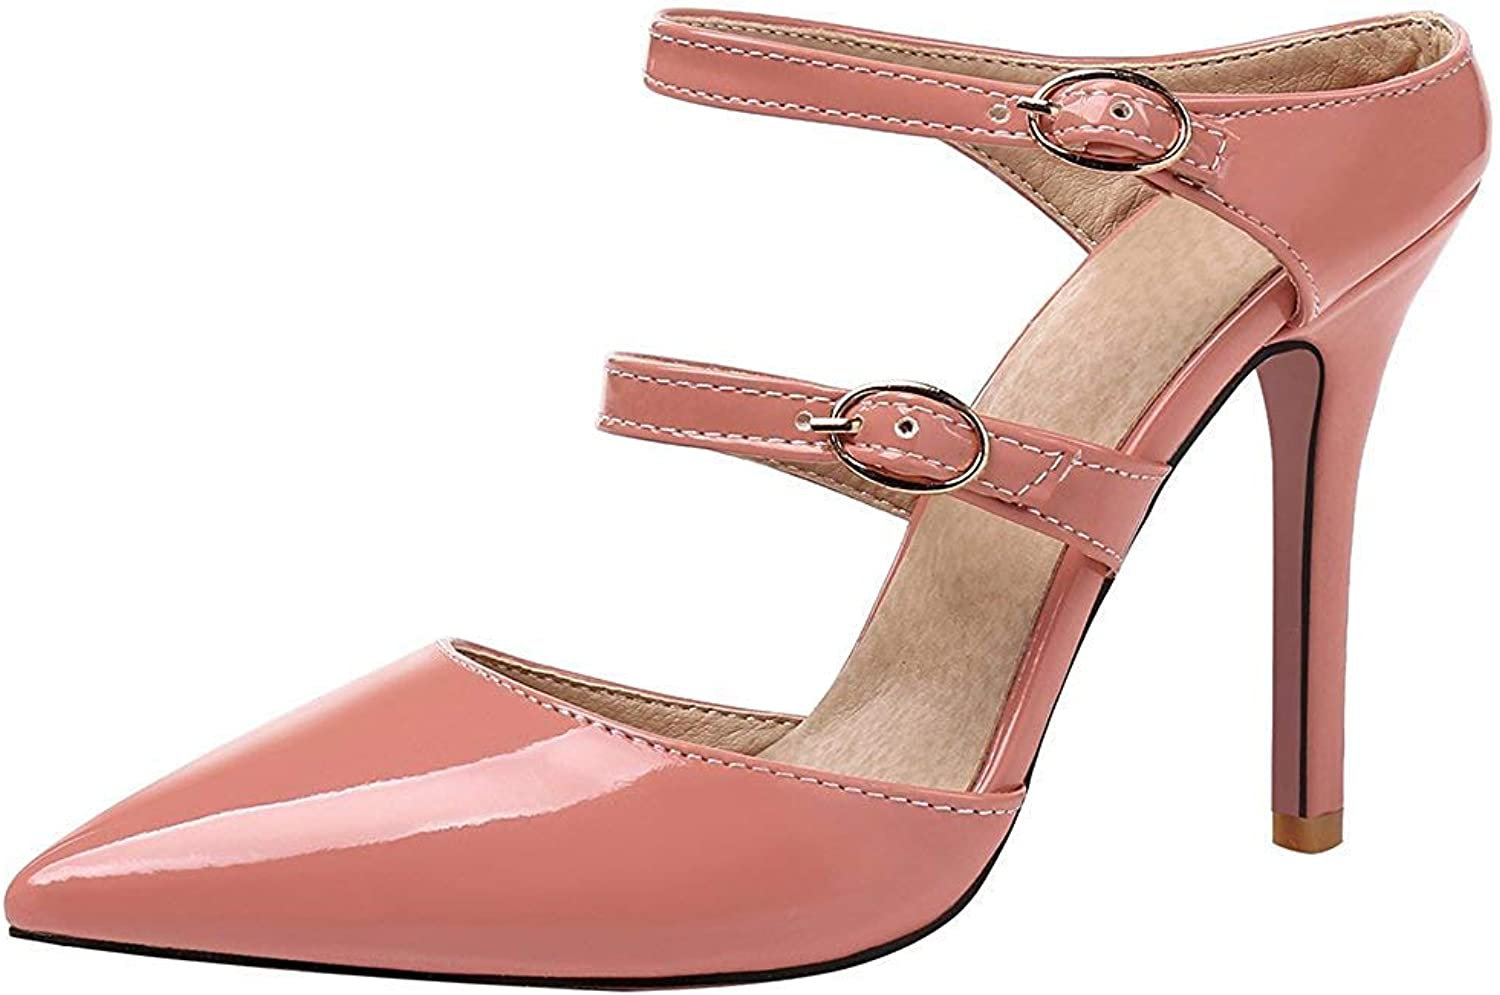 Lelehwhge Women's Dressy Buckle Strap Pointed Toe Stiletto High Heels Mules shoes Sandals Yellow 8 M US